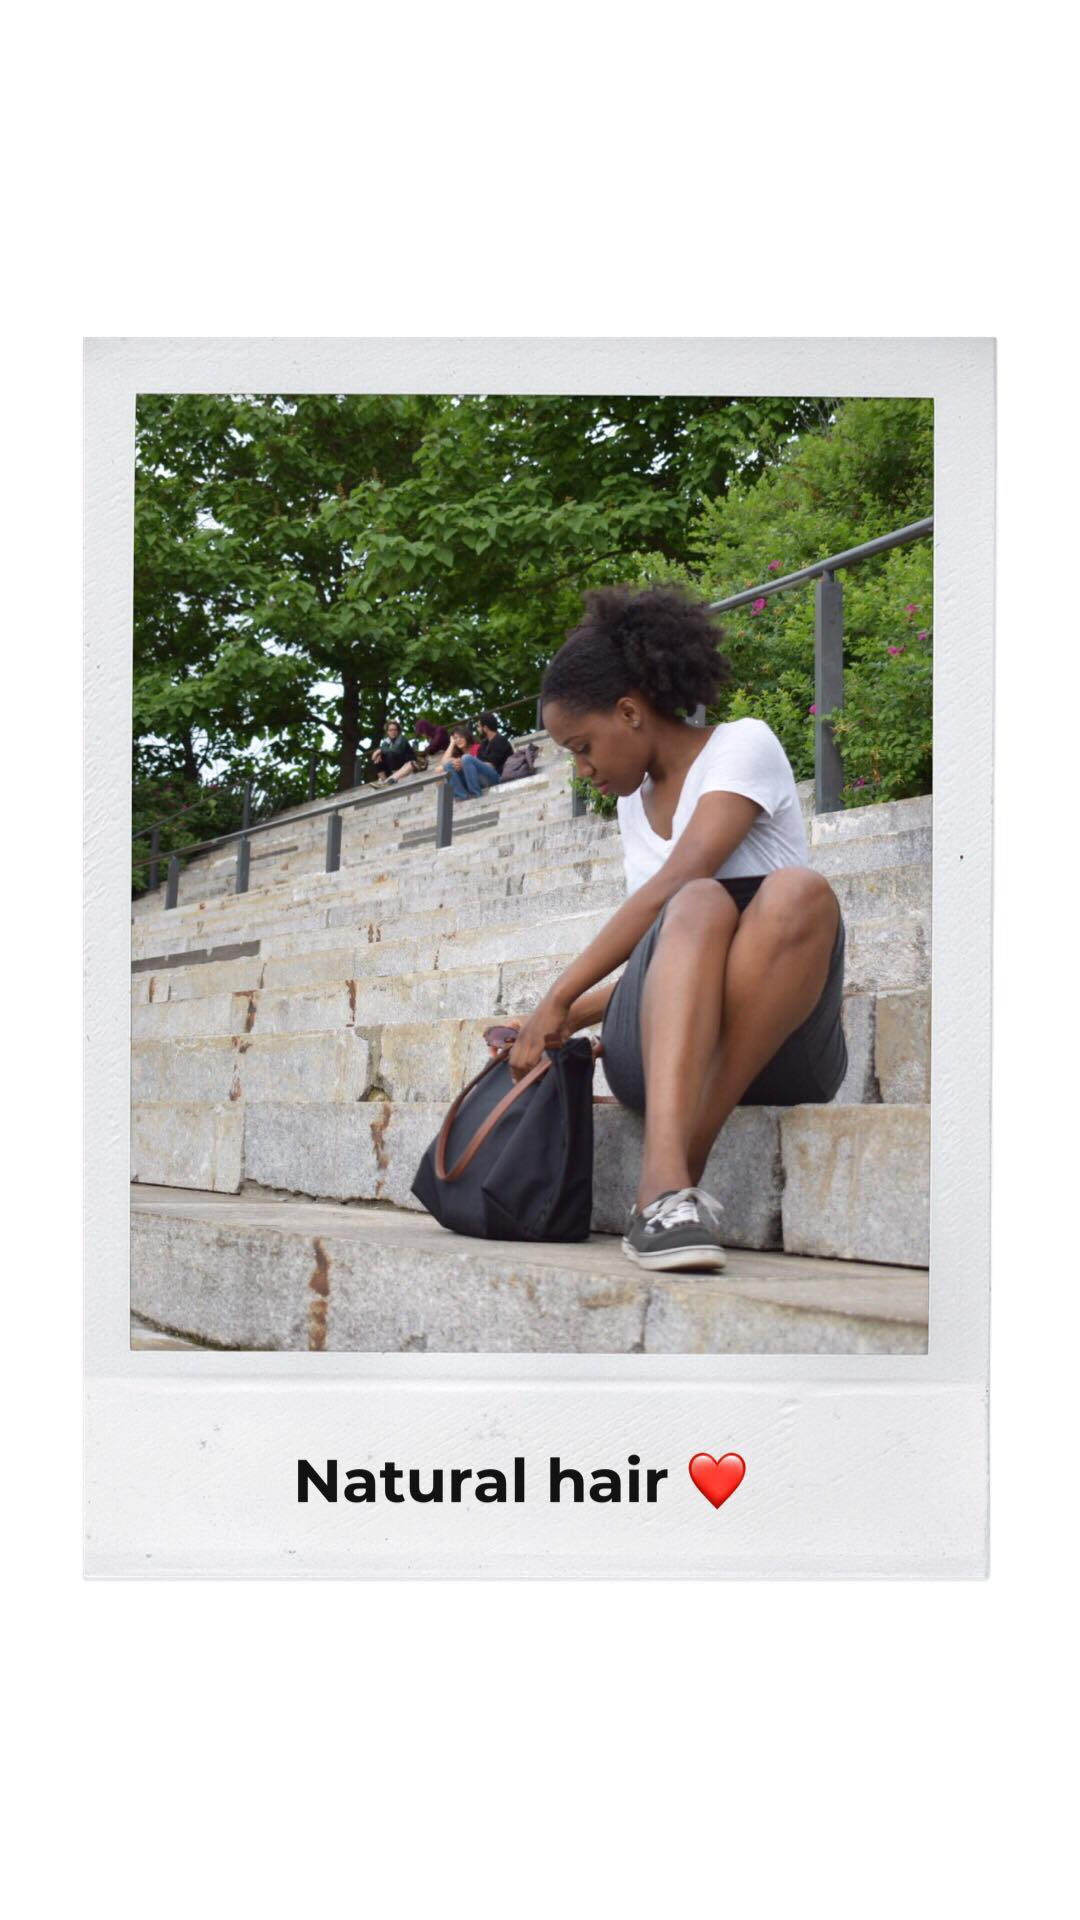 - Protective styling is fun, it gives us the freedom to switch up our looks while keeping our natural hair healthy. What are your go-to protective styles? Comment below.